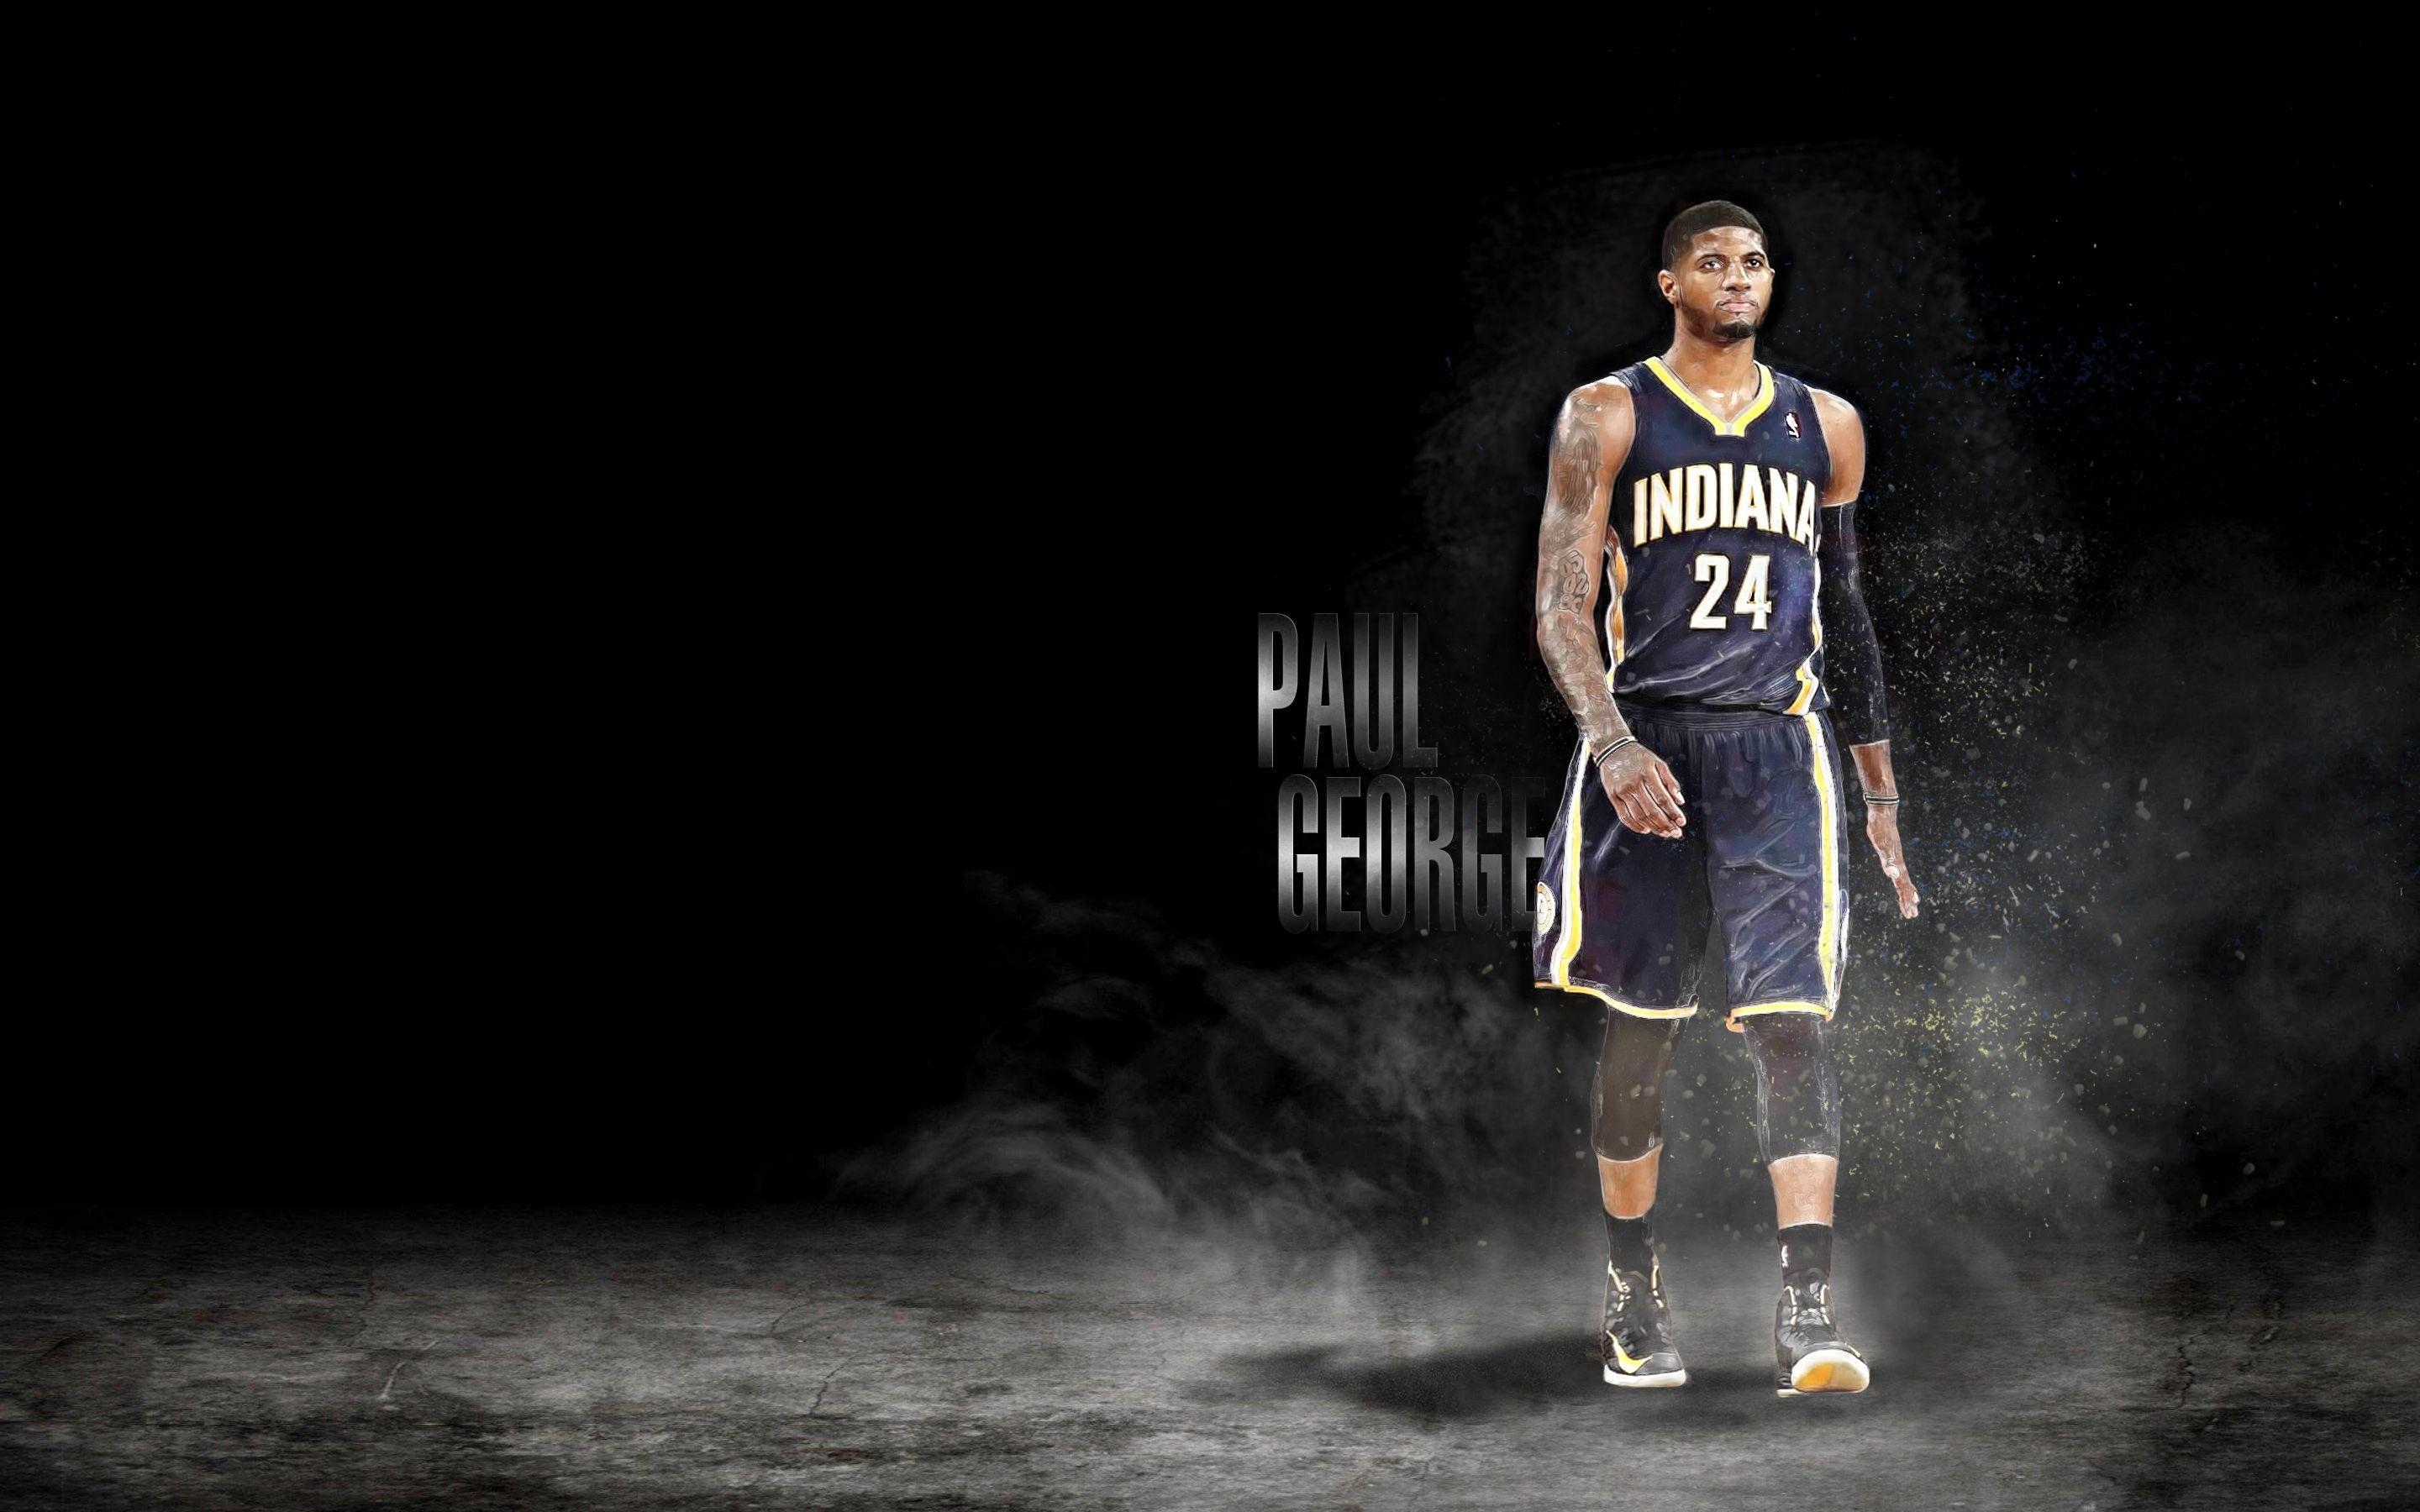 Paul George Wallpapers - Wallpaper Cave Basketball Players Wallpapers White